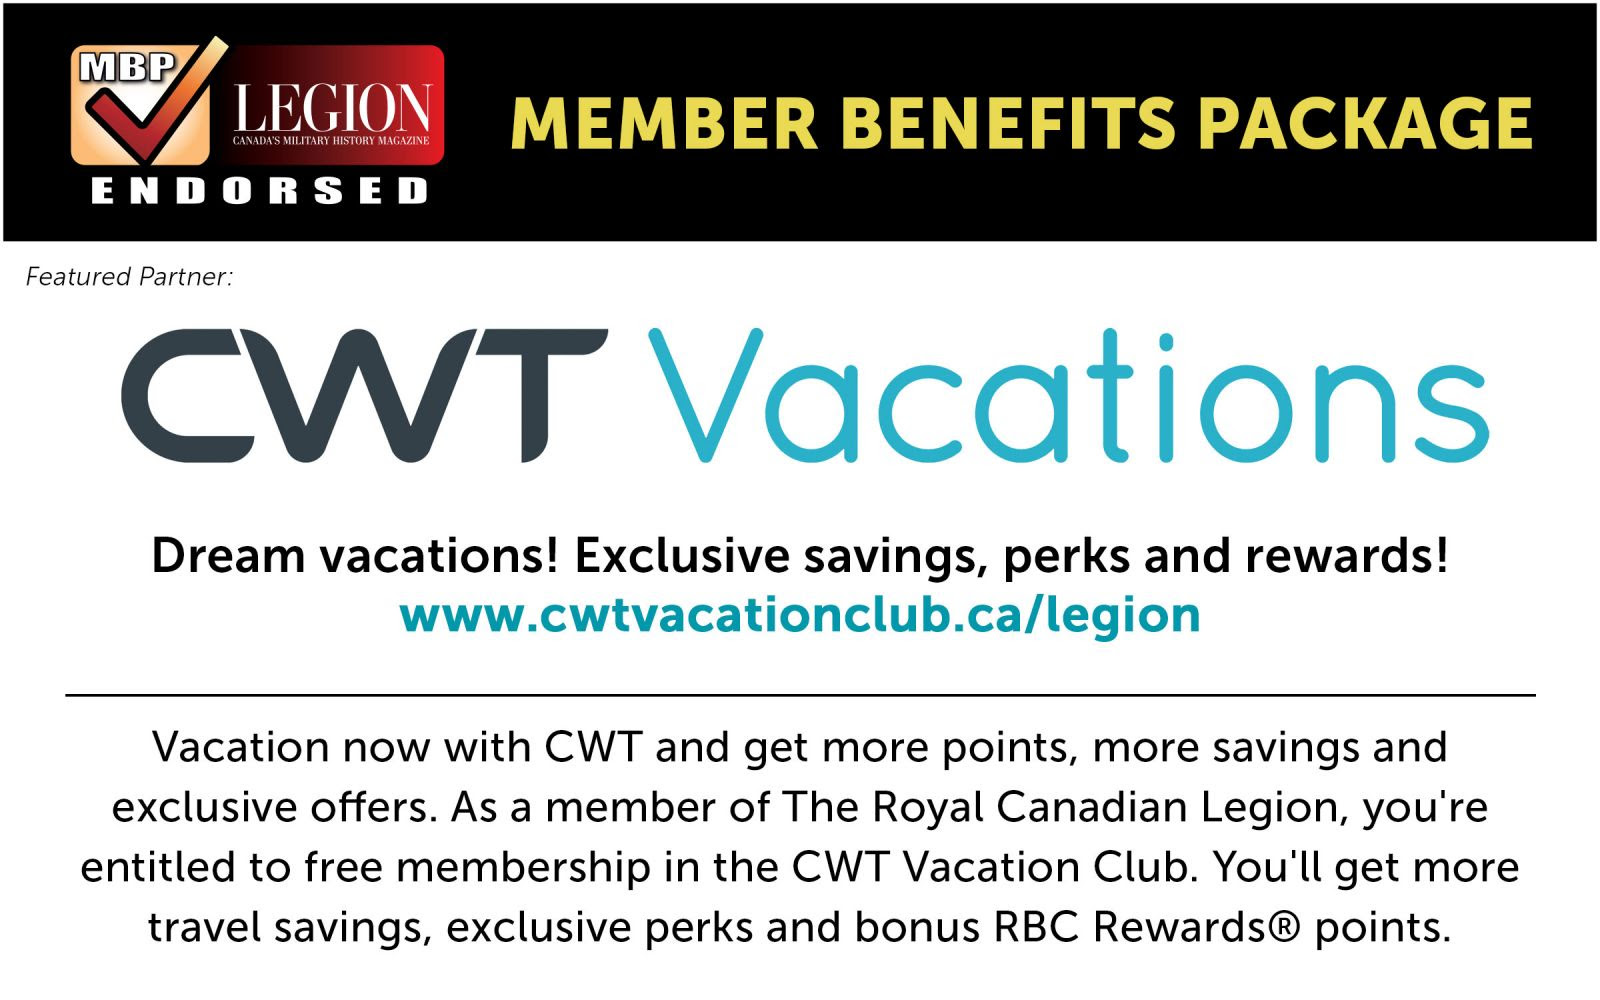 www.cwtvacationsclub.ca/legion